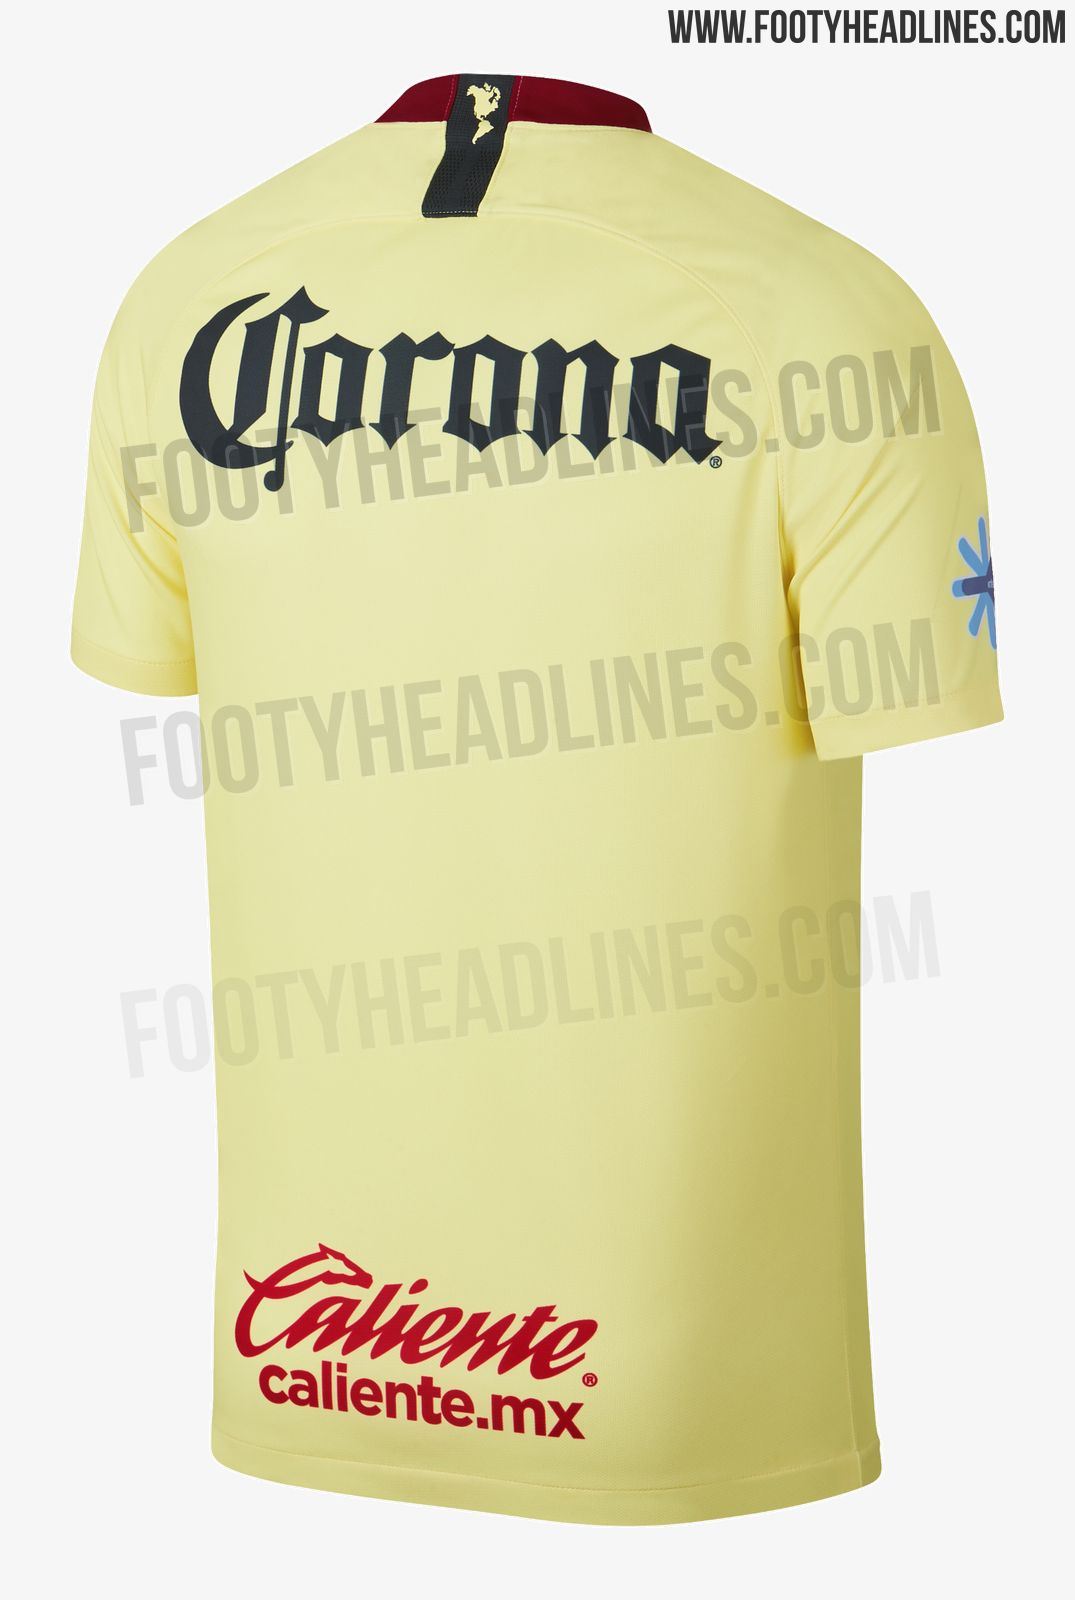 2b06aecc4e8 The new Club America 18-19 home shirt is yellow cream with a navy diagonal  block on the front. Red details on the color block design and the collar  add a ...